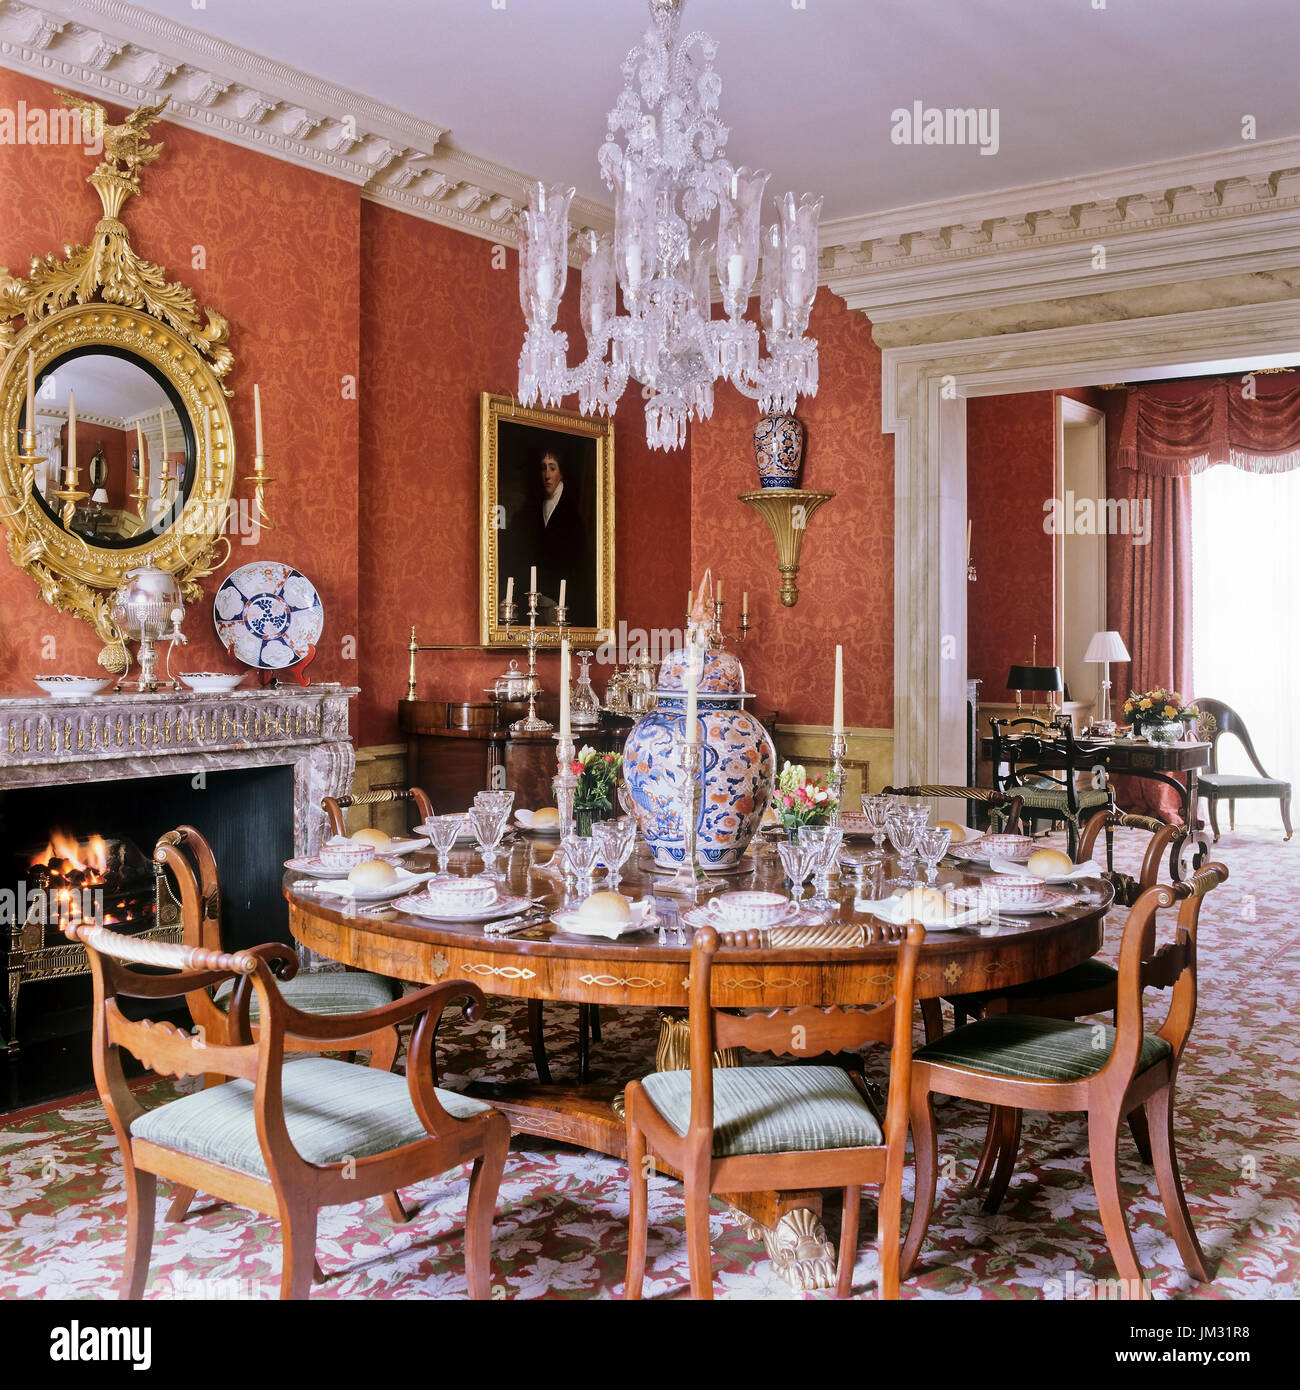 Victorian Dining Room Stock Photos & Victorian Dining Room